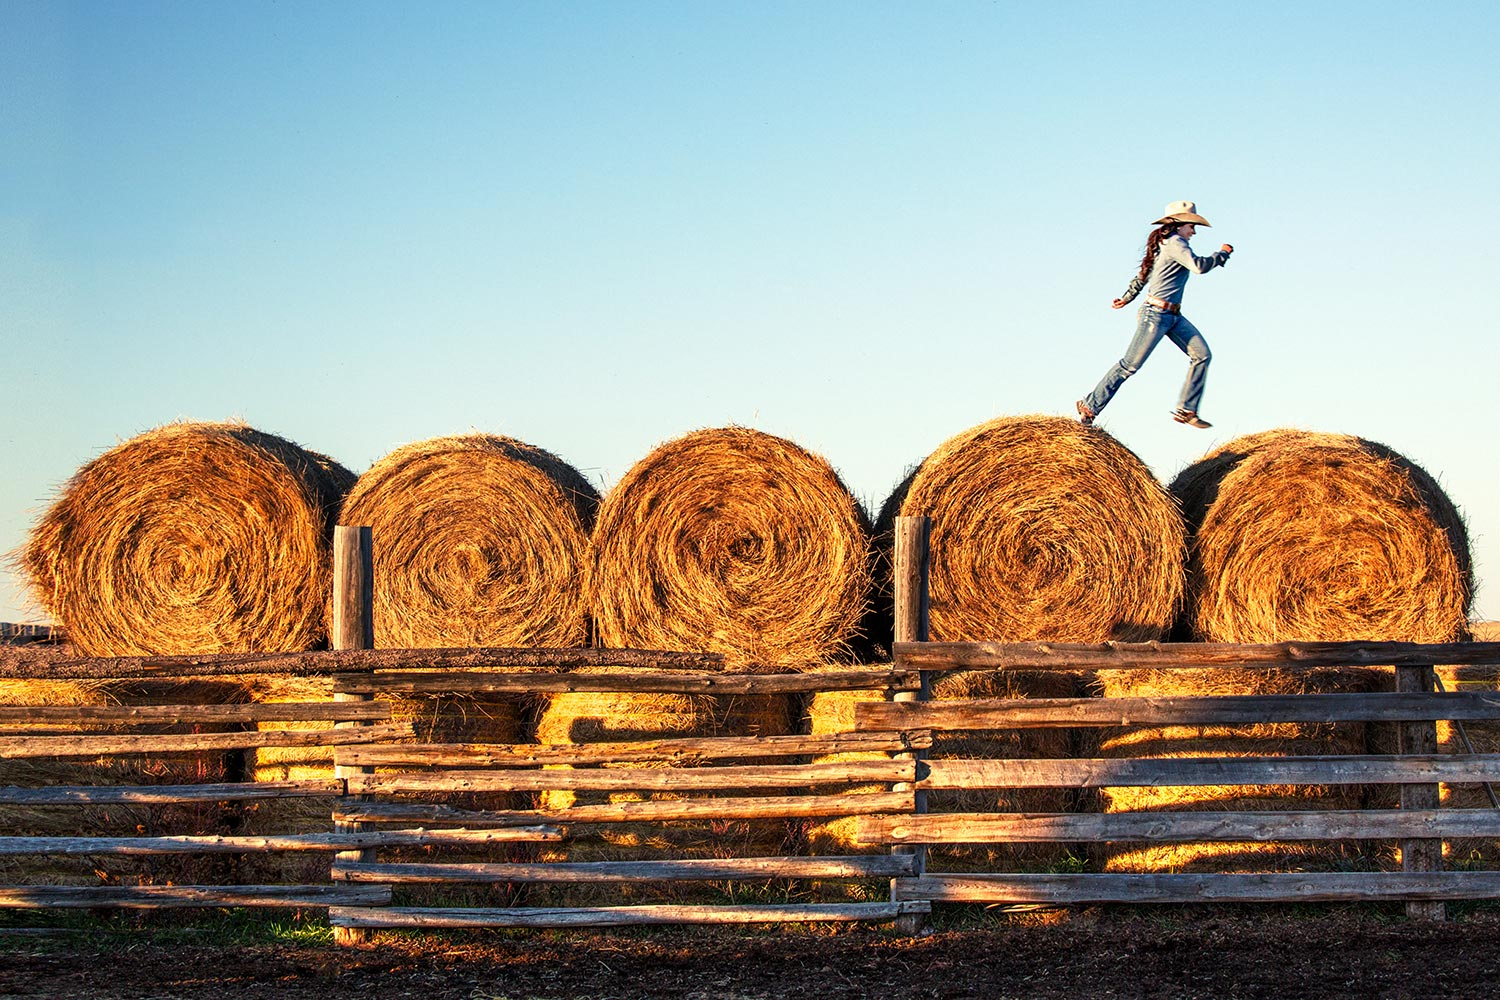 Leaping Over Bales